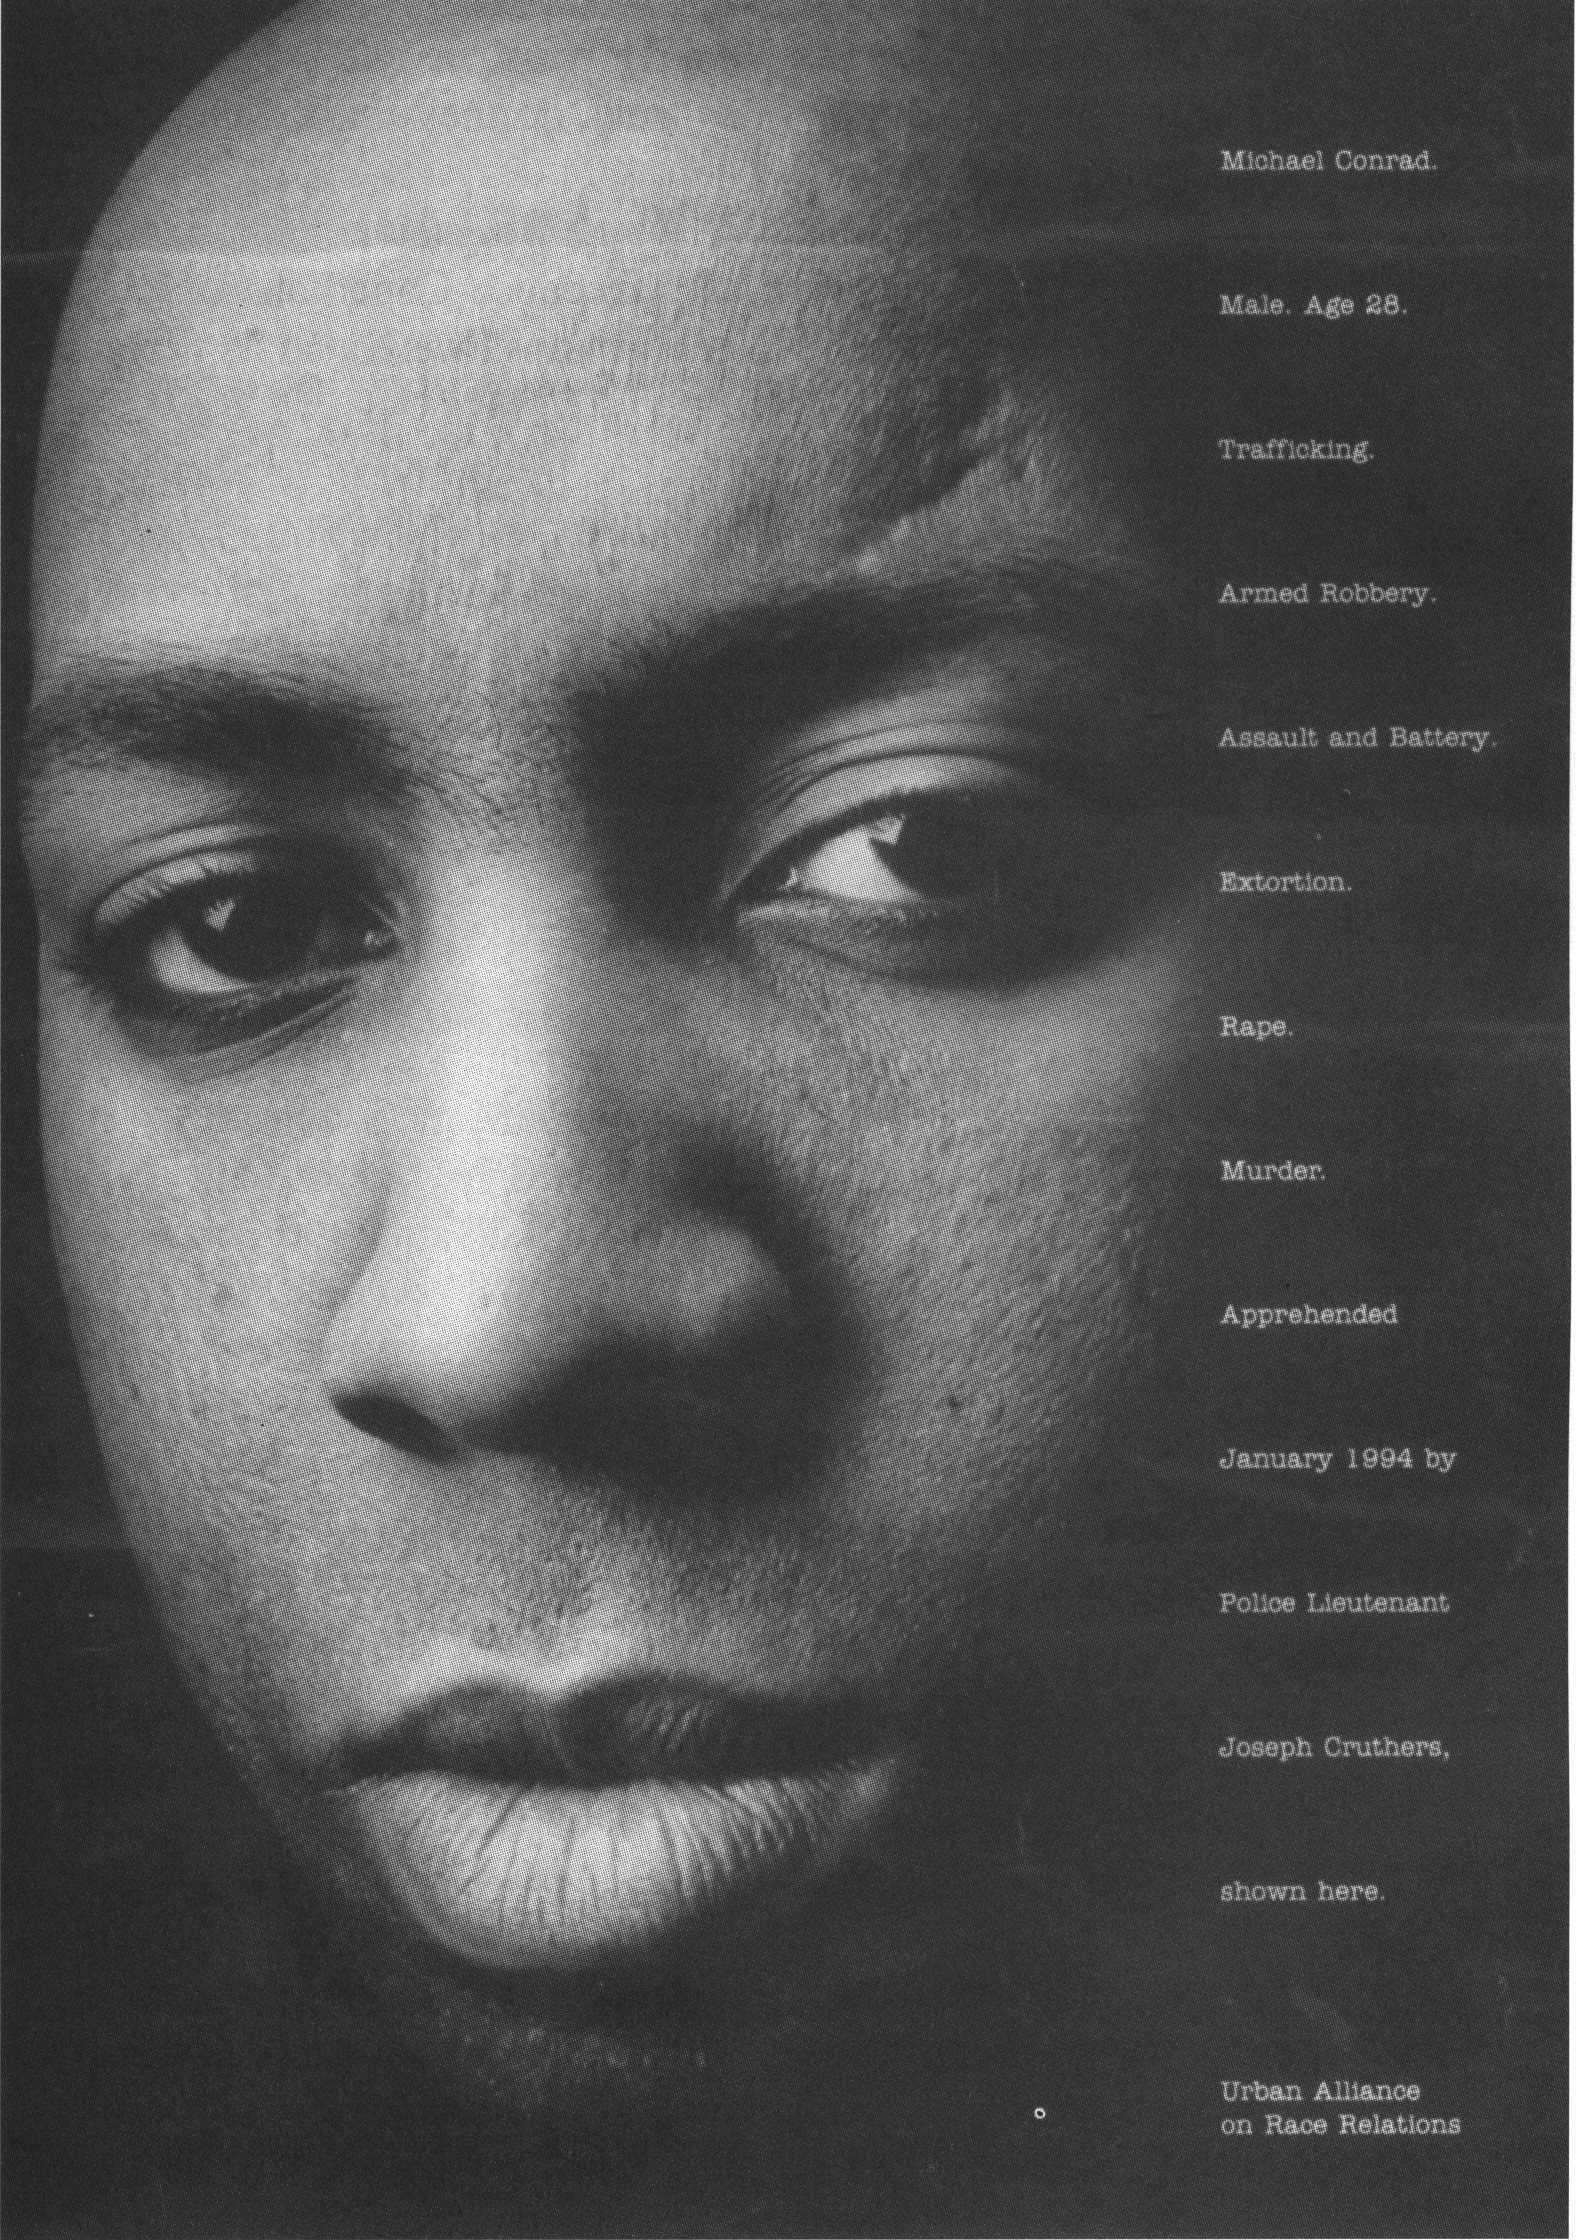 Urban Alliance on Race Relations Policeman Ad